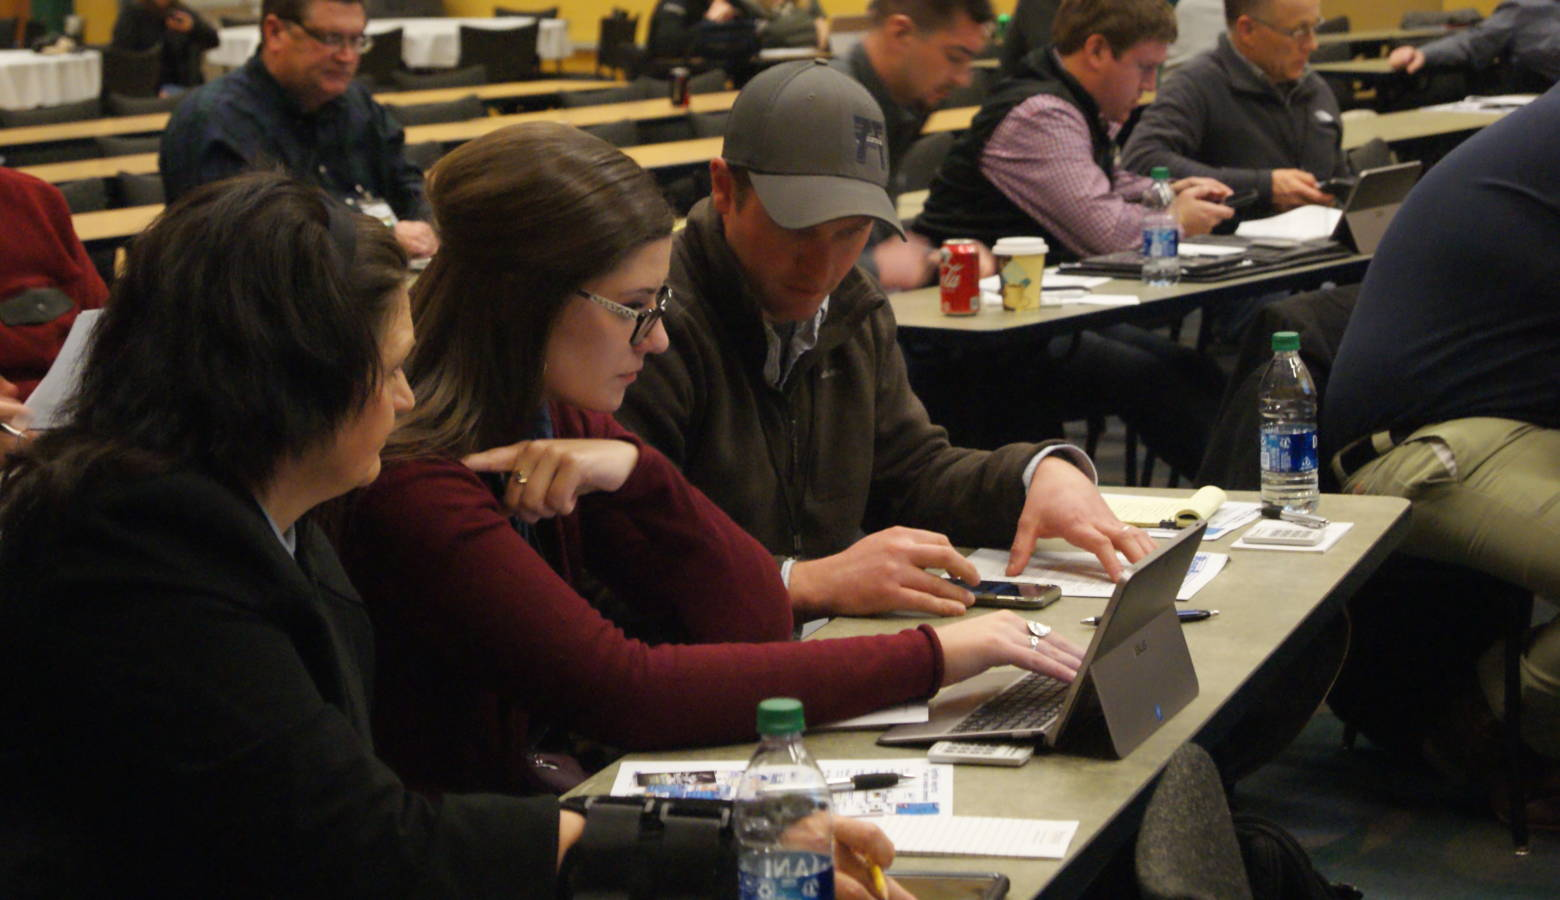 (Left to right) Kayla Holscher, Jenna Lansing and Andy Hruby work as a group during the Ag Survivor simulator activity at Purdue University's Top Farmer Conference. (Samantha Horton/IPB News)